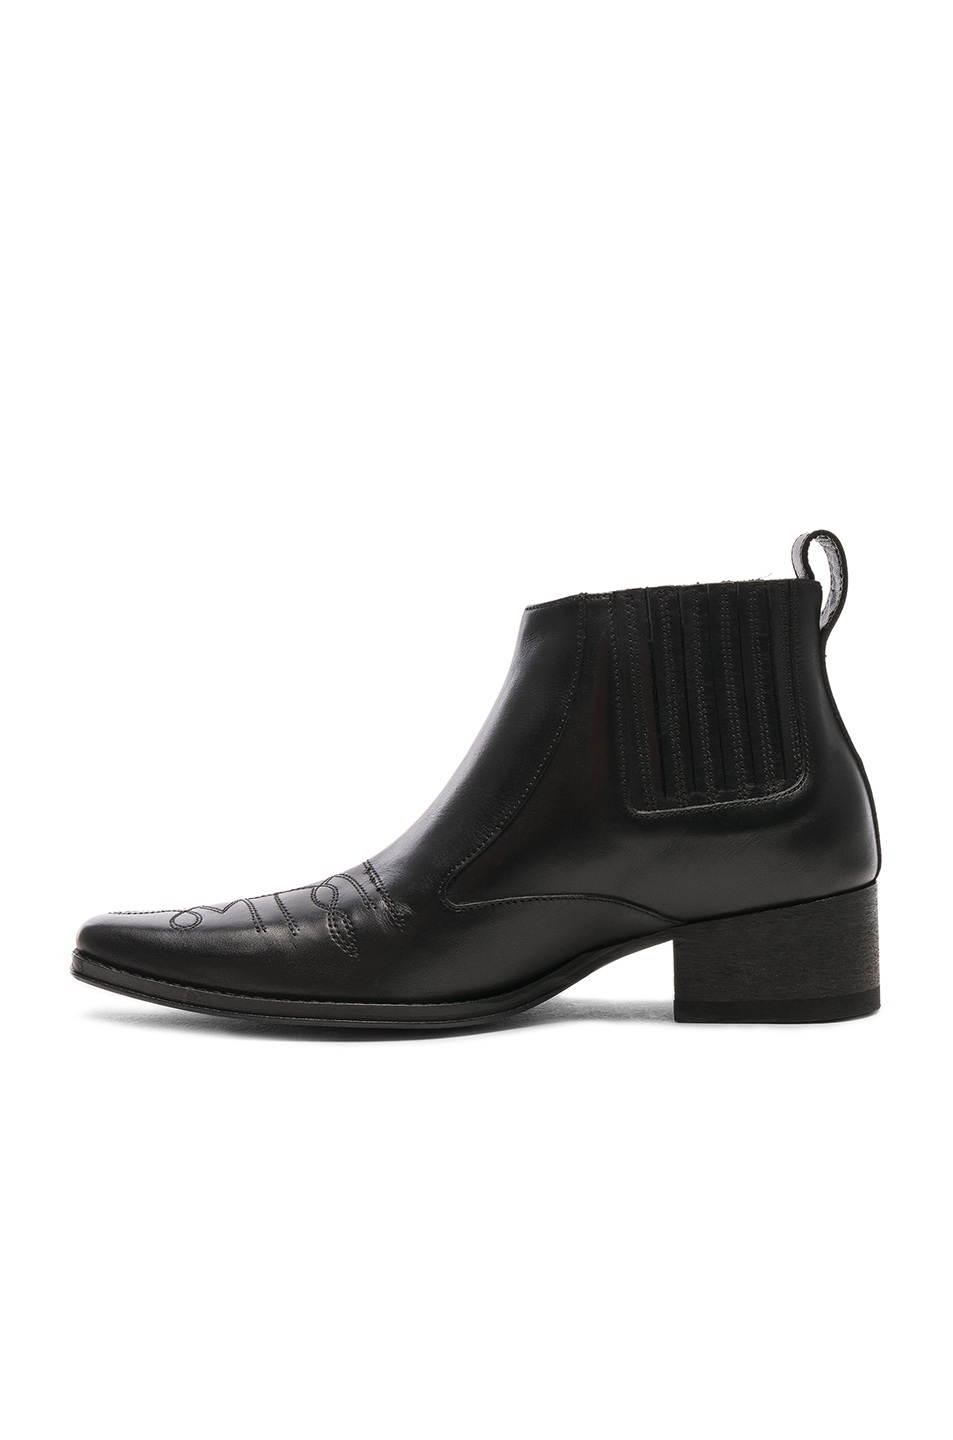 Haider Ackermann Leather Low Boots